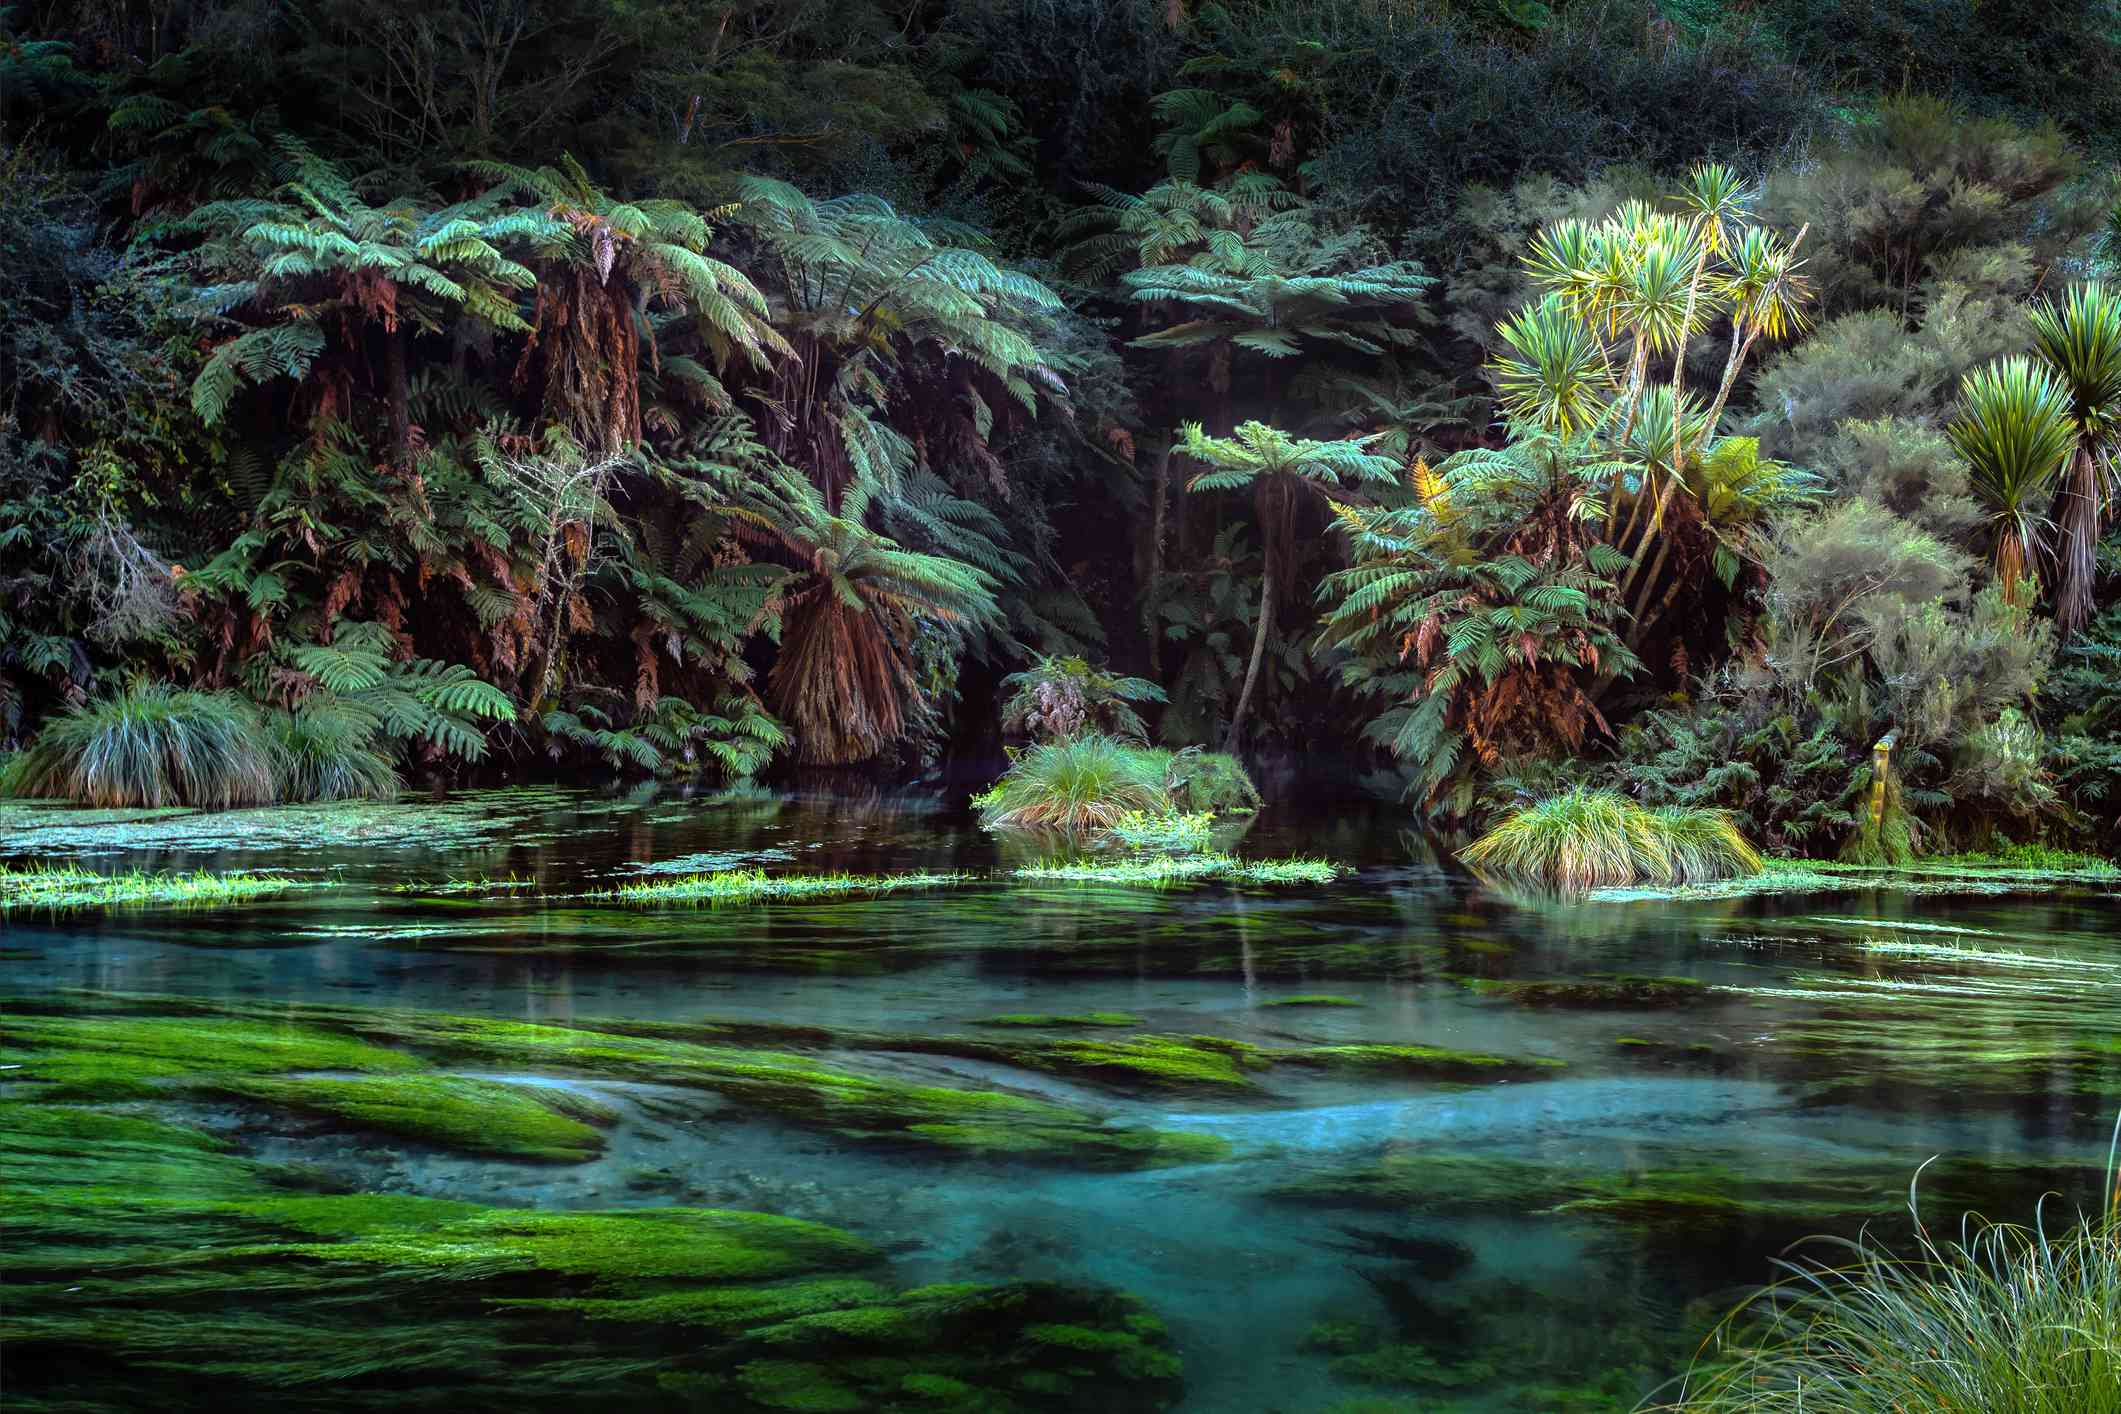 fern and palm trees and cold spring waters